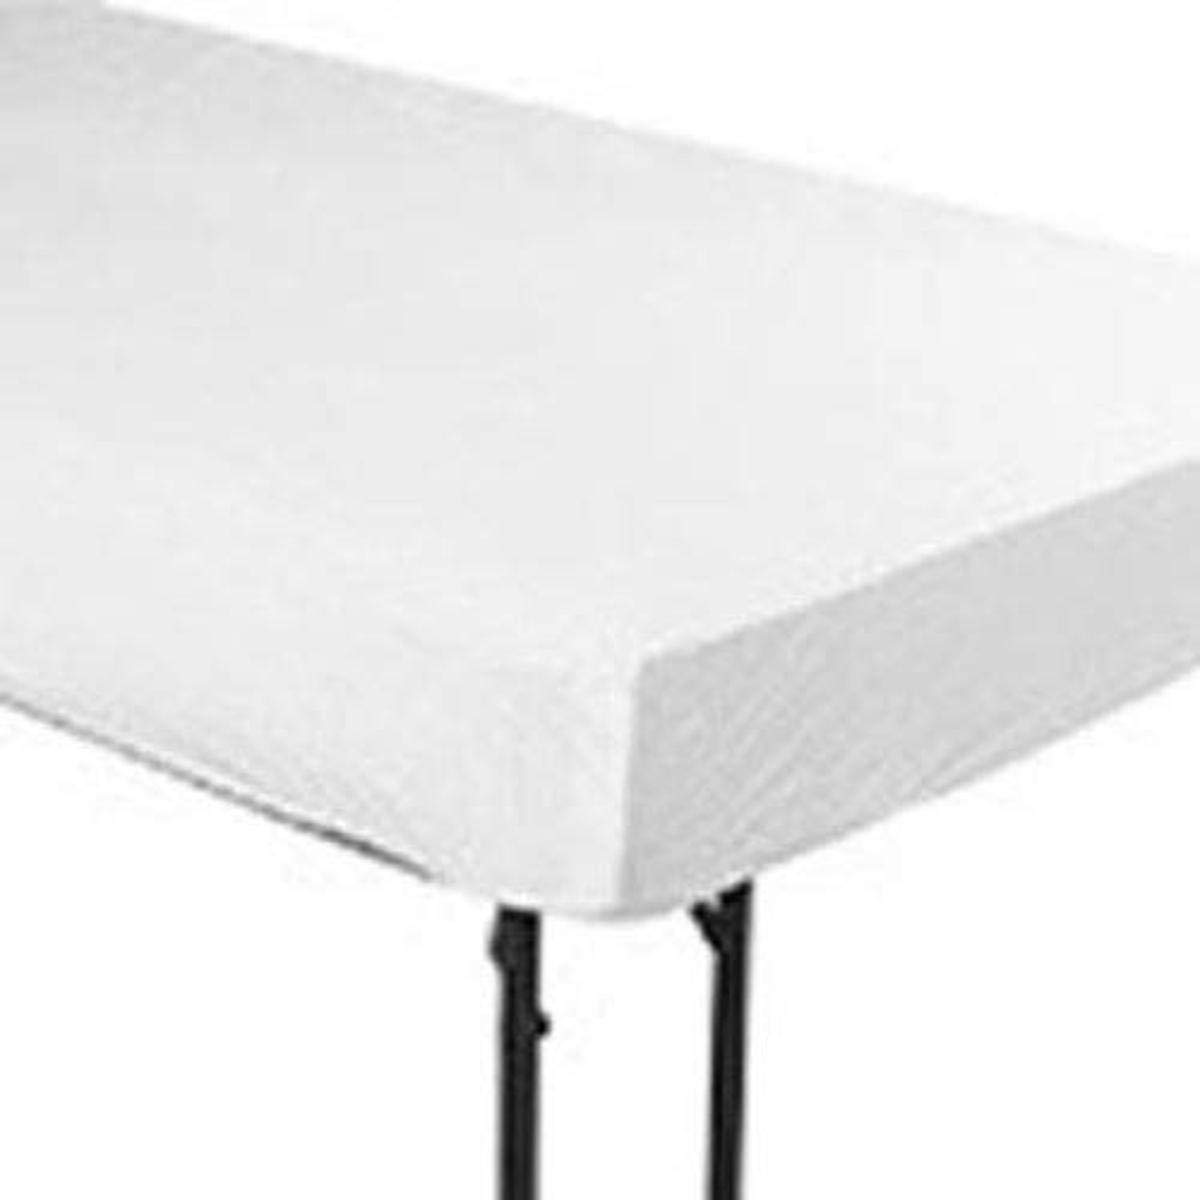 """The Aftermarket Group - TAGRP476028 Bed Mattress Cover, Vinyl, Contoured, 36"""" W x 80"""" L x 6"""" H, Package of 12, TAG476028: Industrial & Scientific"""